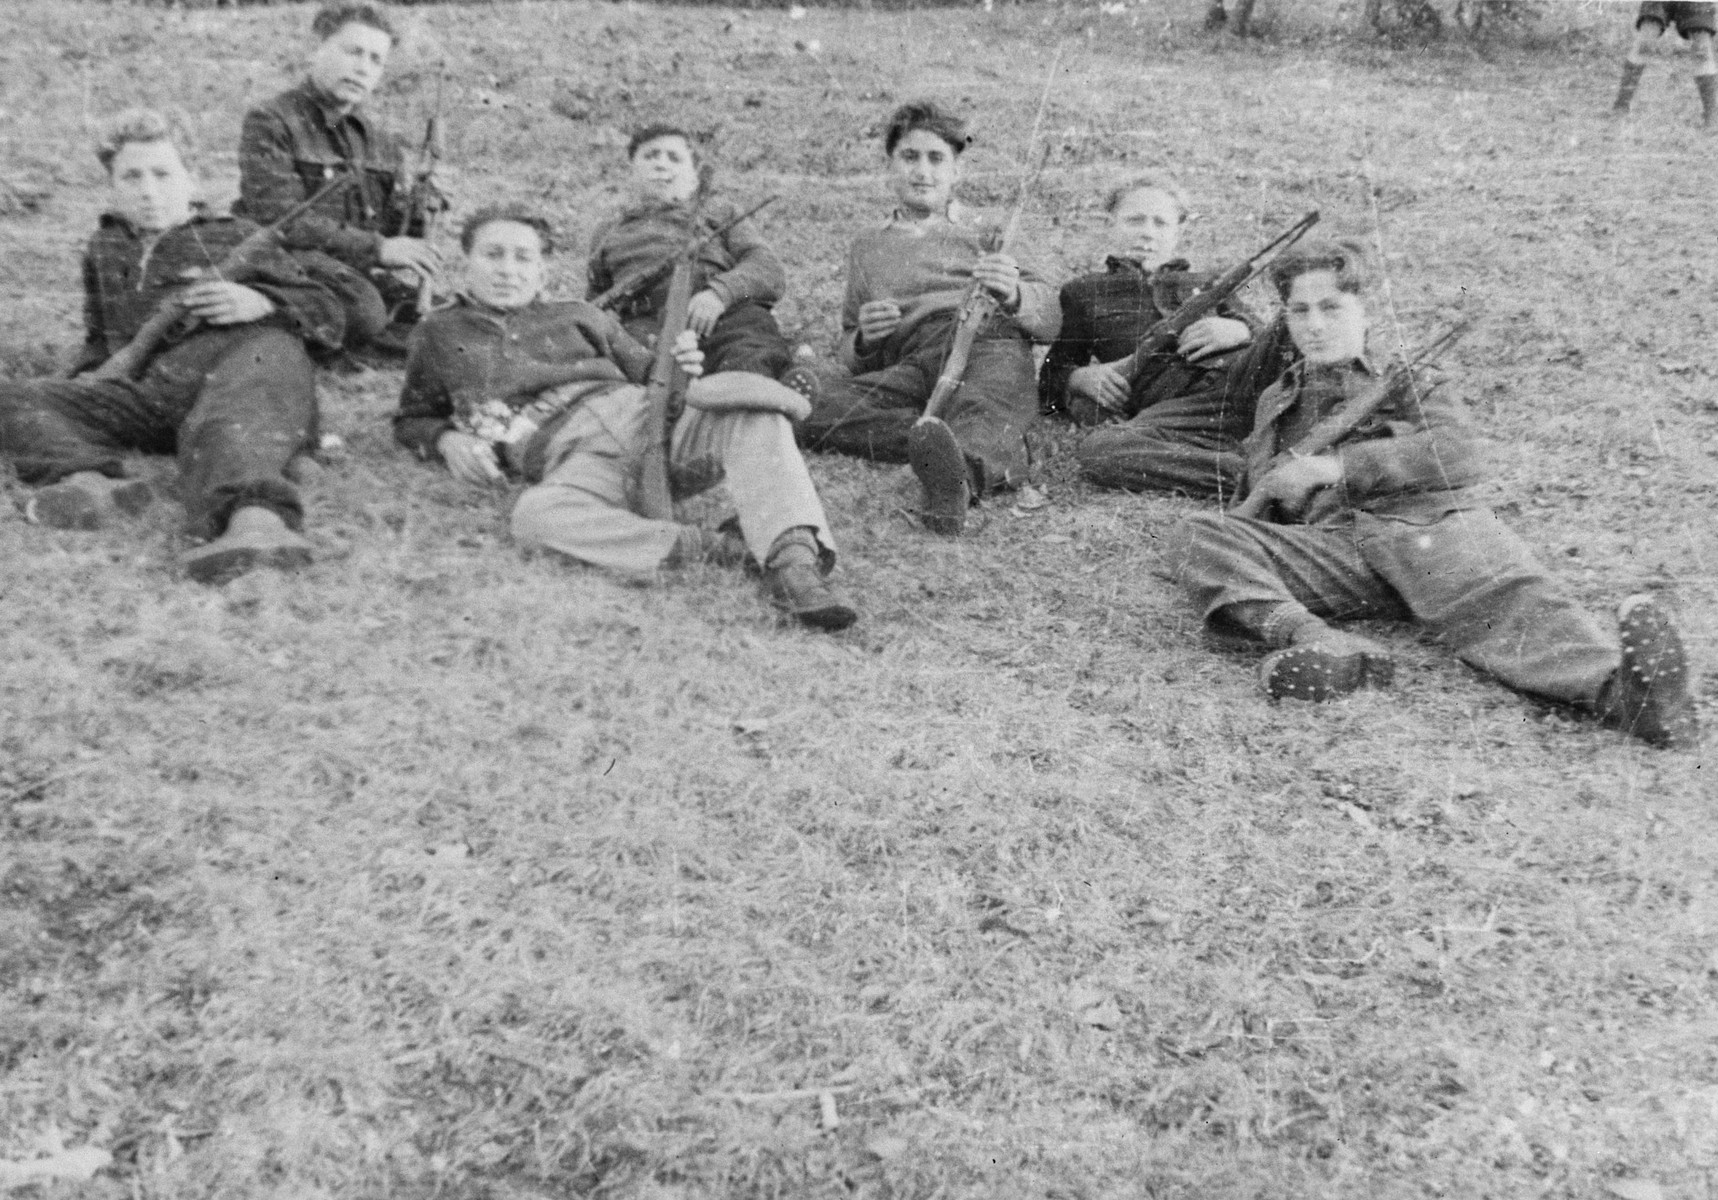 Teenage boys lie in the grass holding weapons during paramilitary training in the Selvino children's home.  The boys were issued real weapons, Italian 22 caliber guns with attached bayonets, but no ammunition.